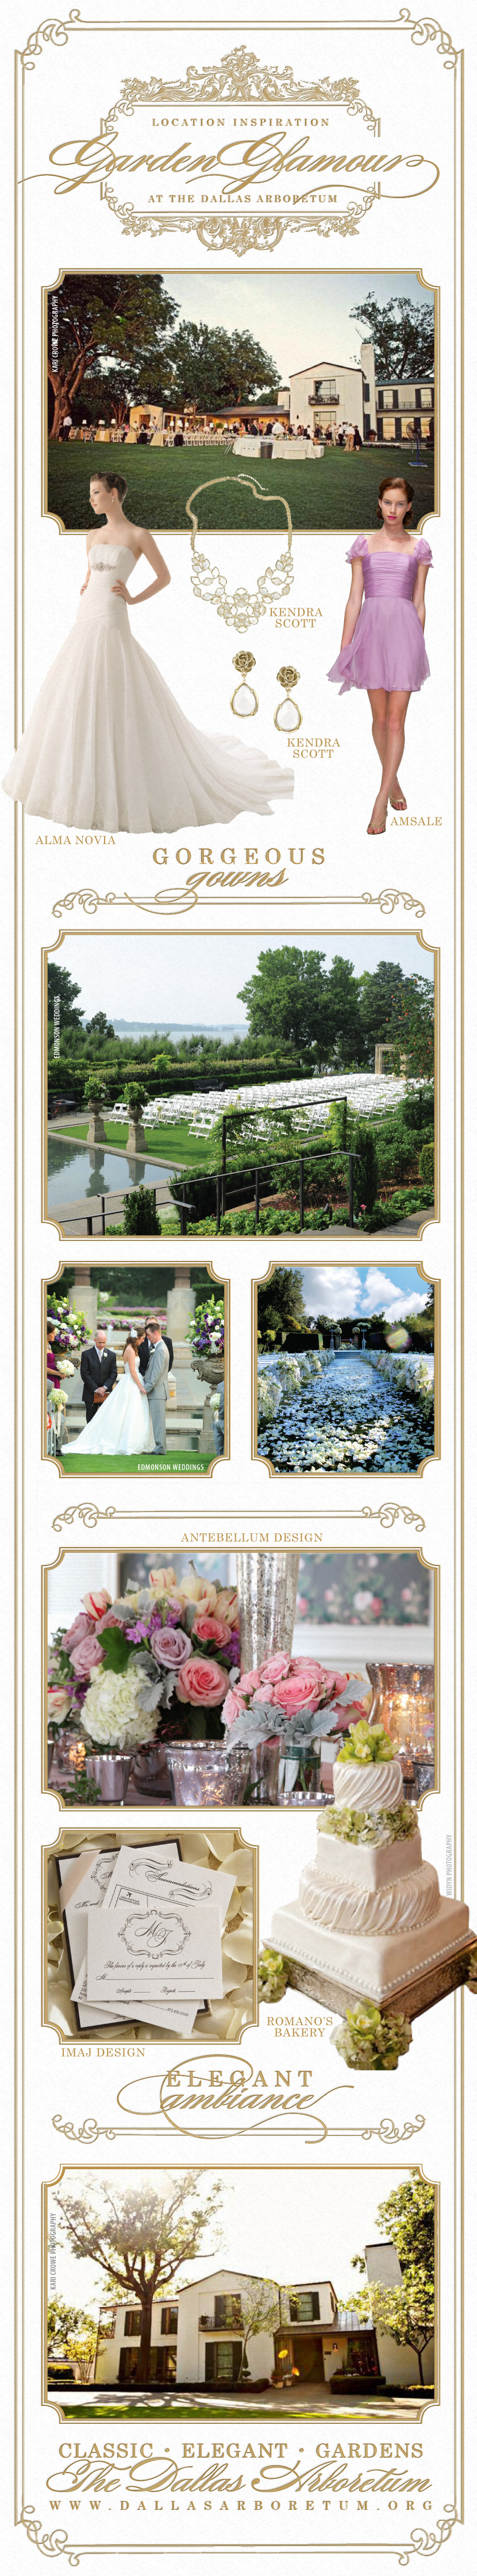 Wedding inspiration from DFW wedding and reception venue the Dallas Arboretum